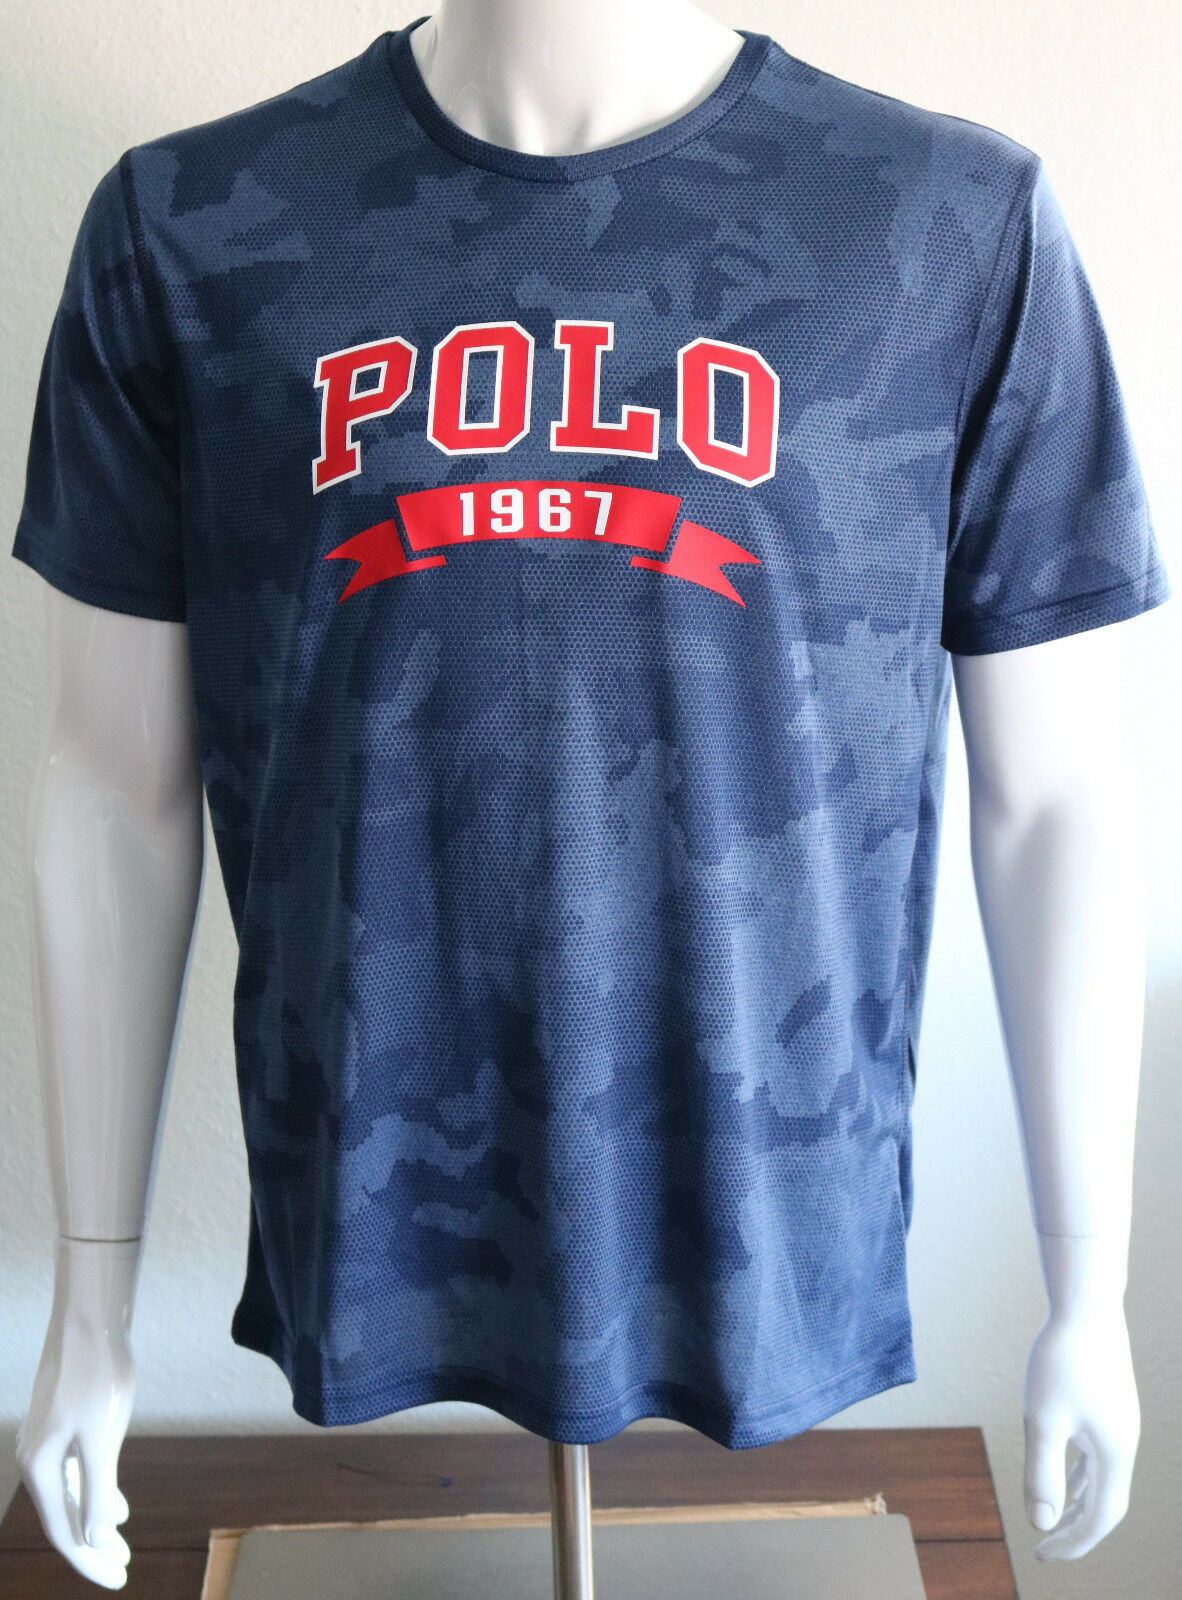 Men's Navycamo Lauren Classic Polo 710748401001 Various 1967 Shirt About Size Ralph Details T 3cRqL4AS5j